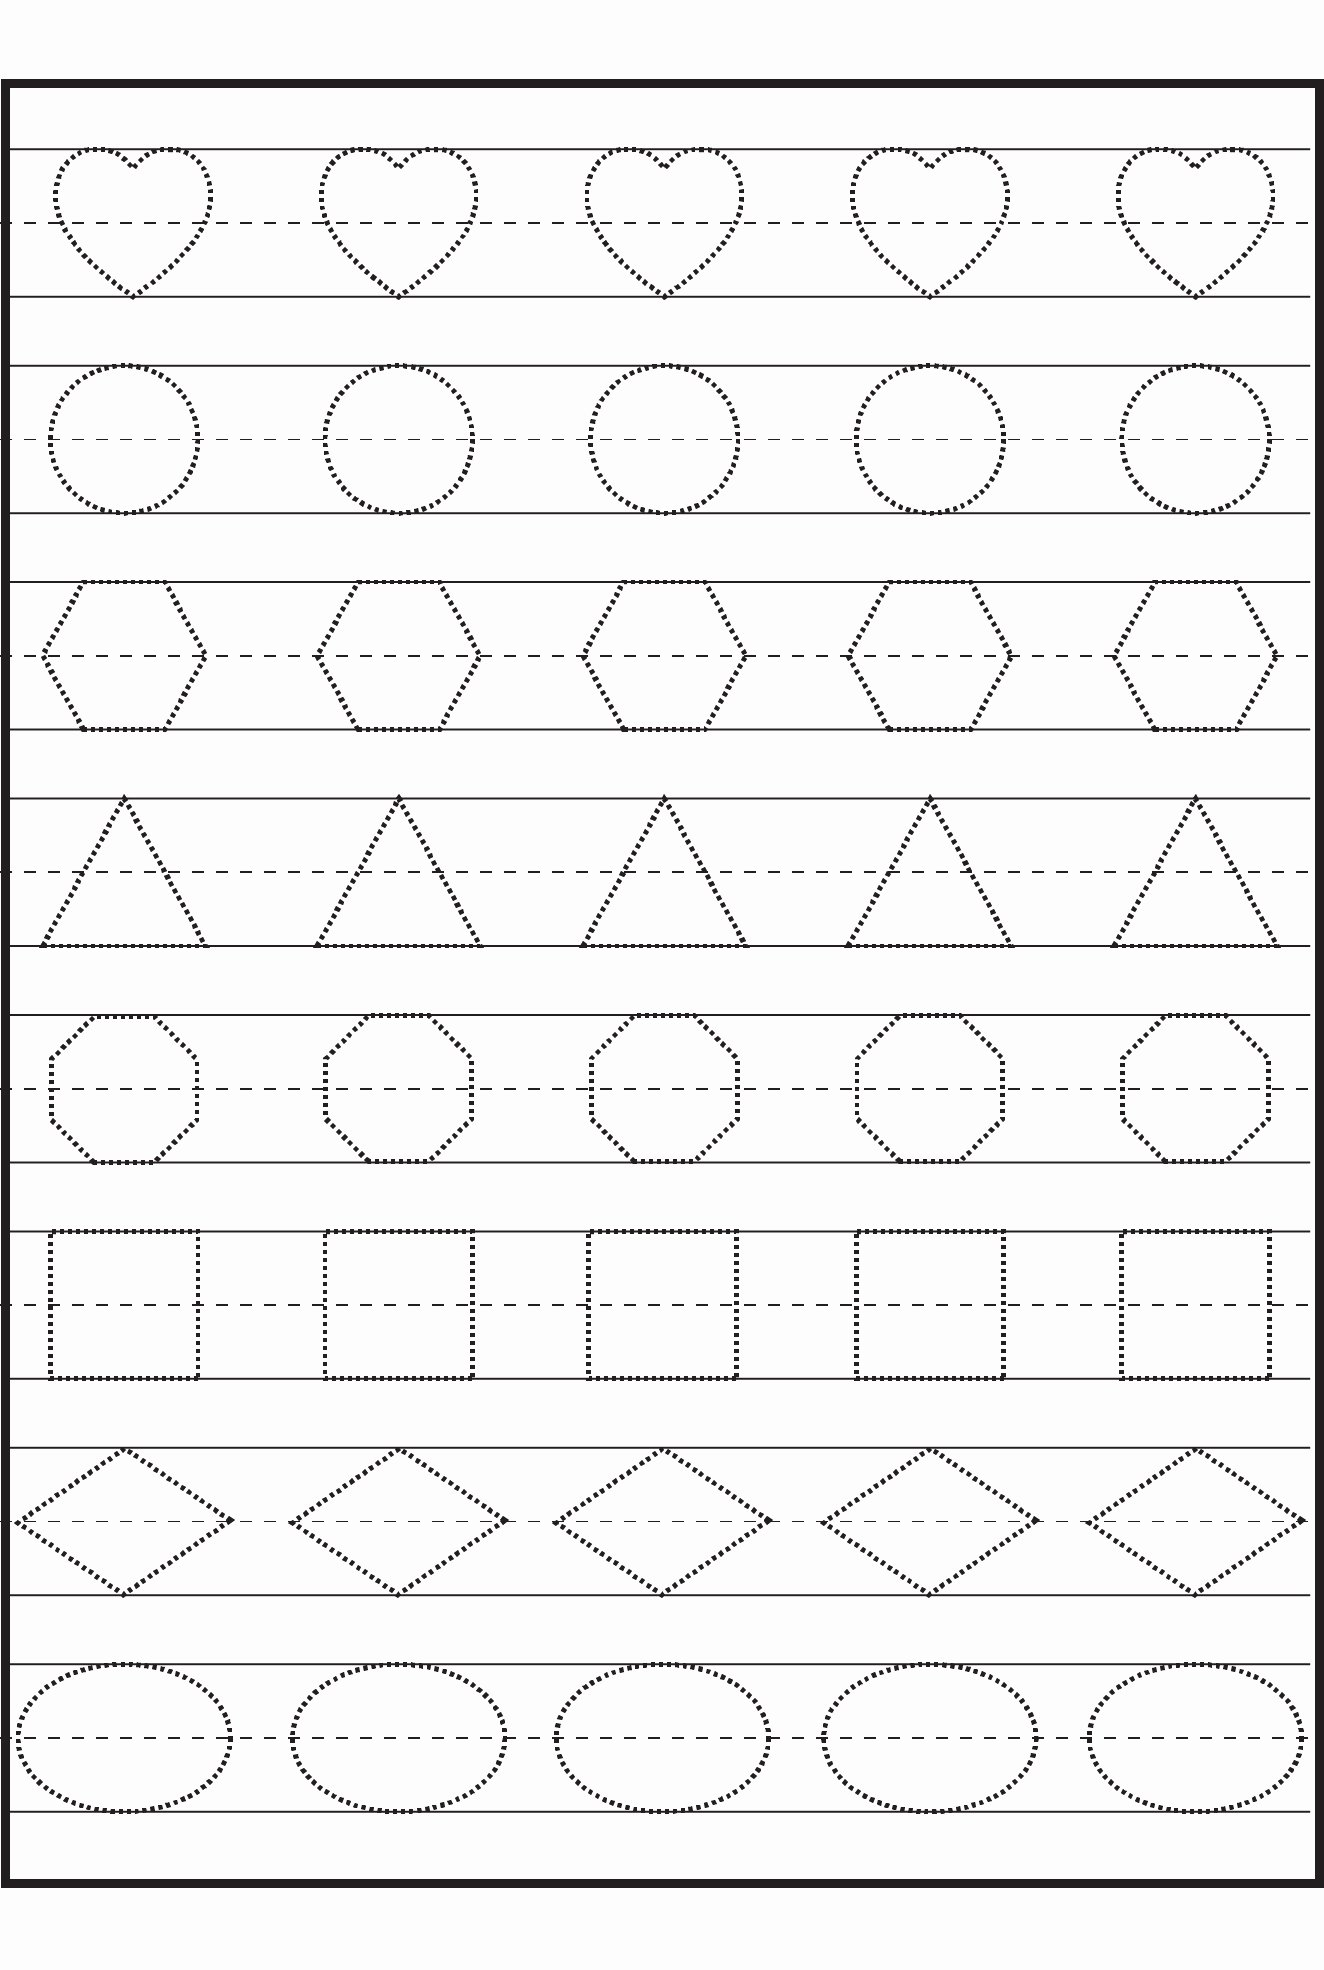 Trace Worksheets for Preschoolers Fresh Math Worksheet Preschool Printing Worksheets Preschool